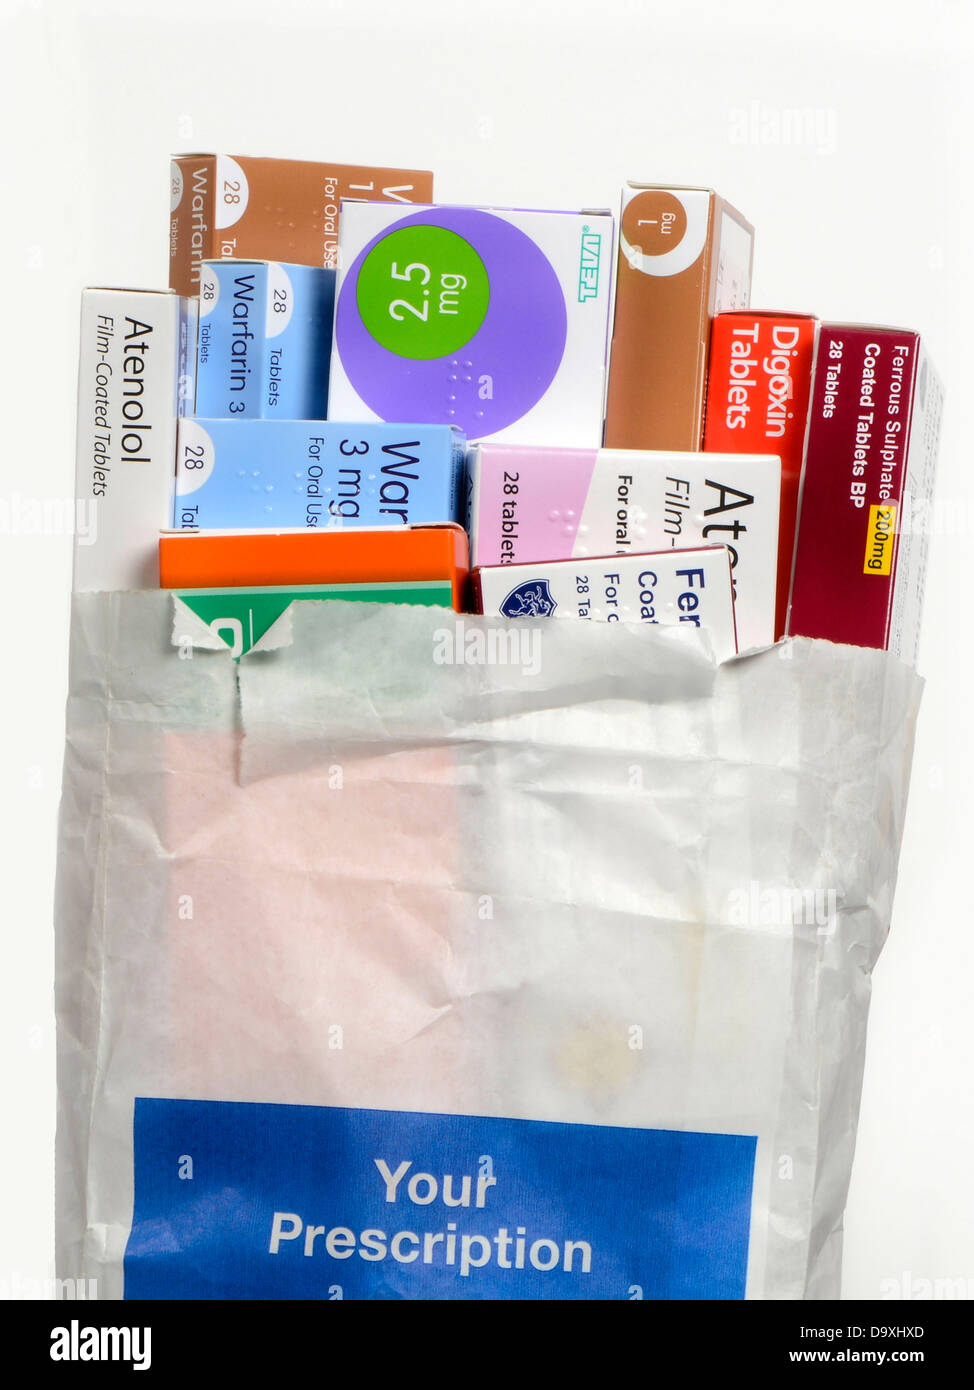 A bag of prescription medicines from the chemist. - Stock Image